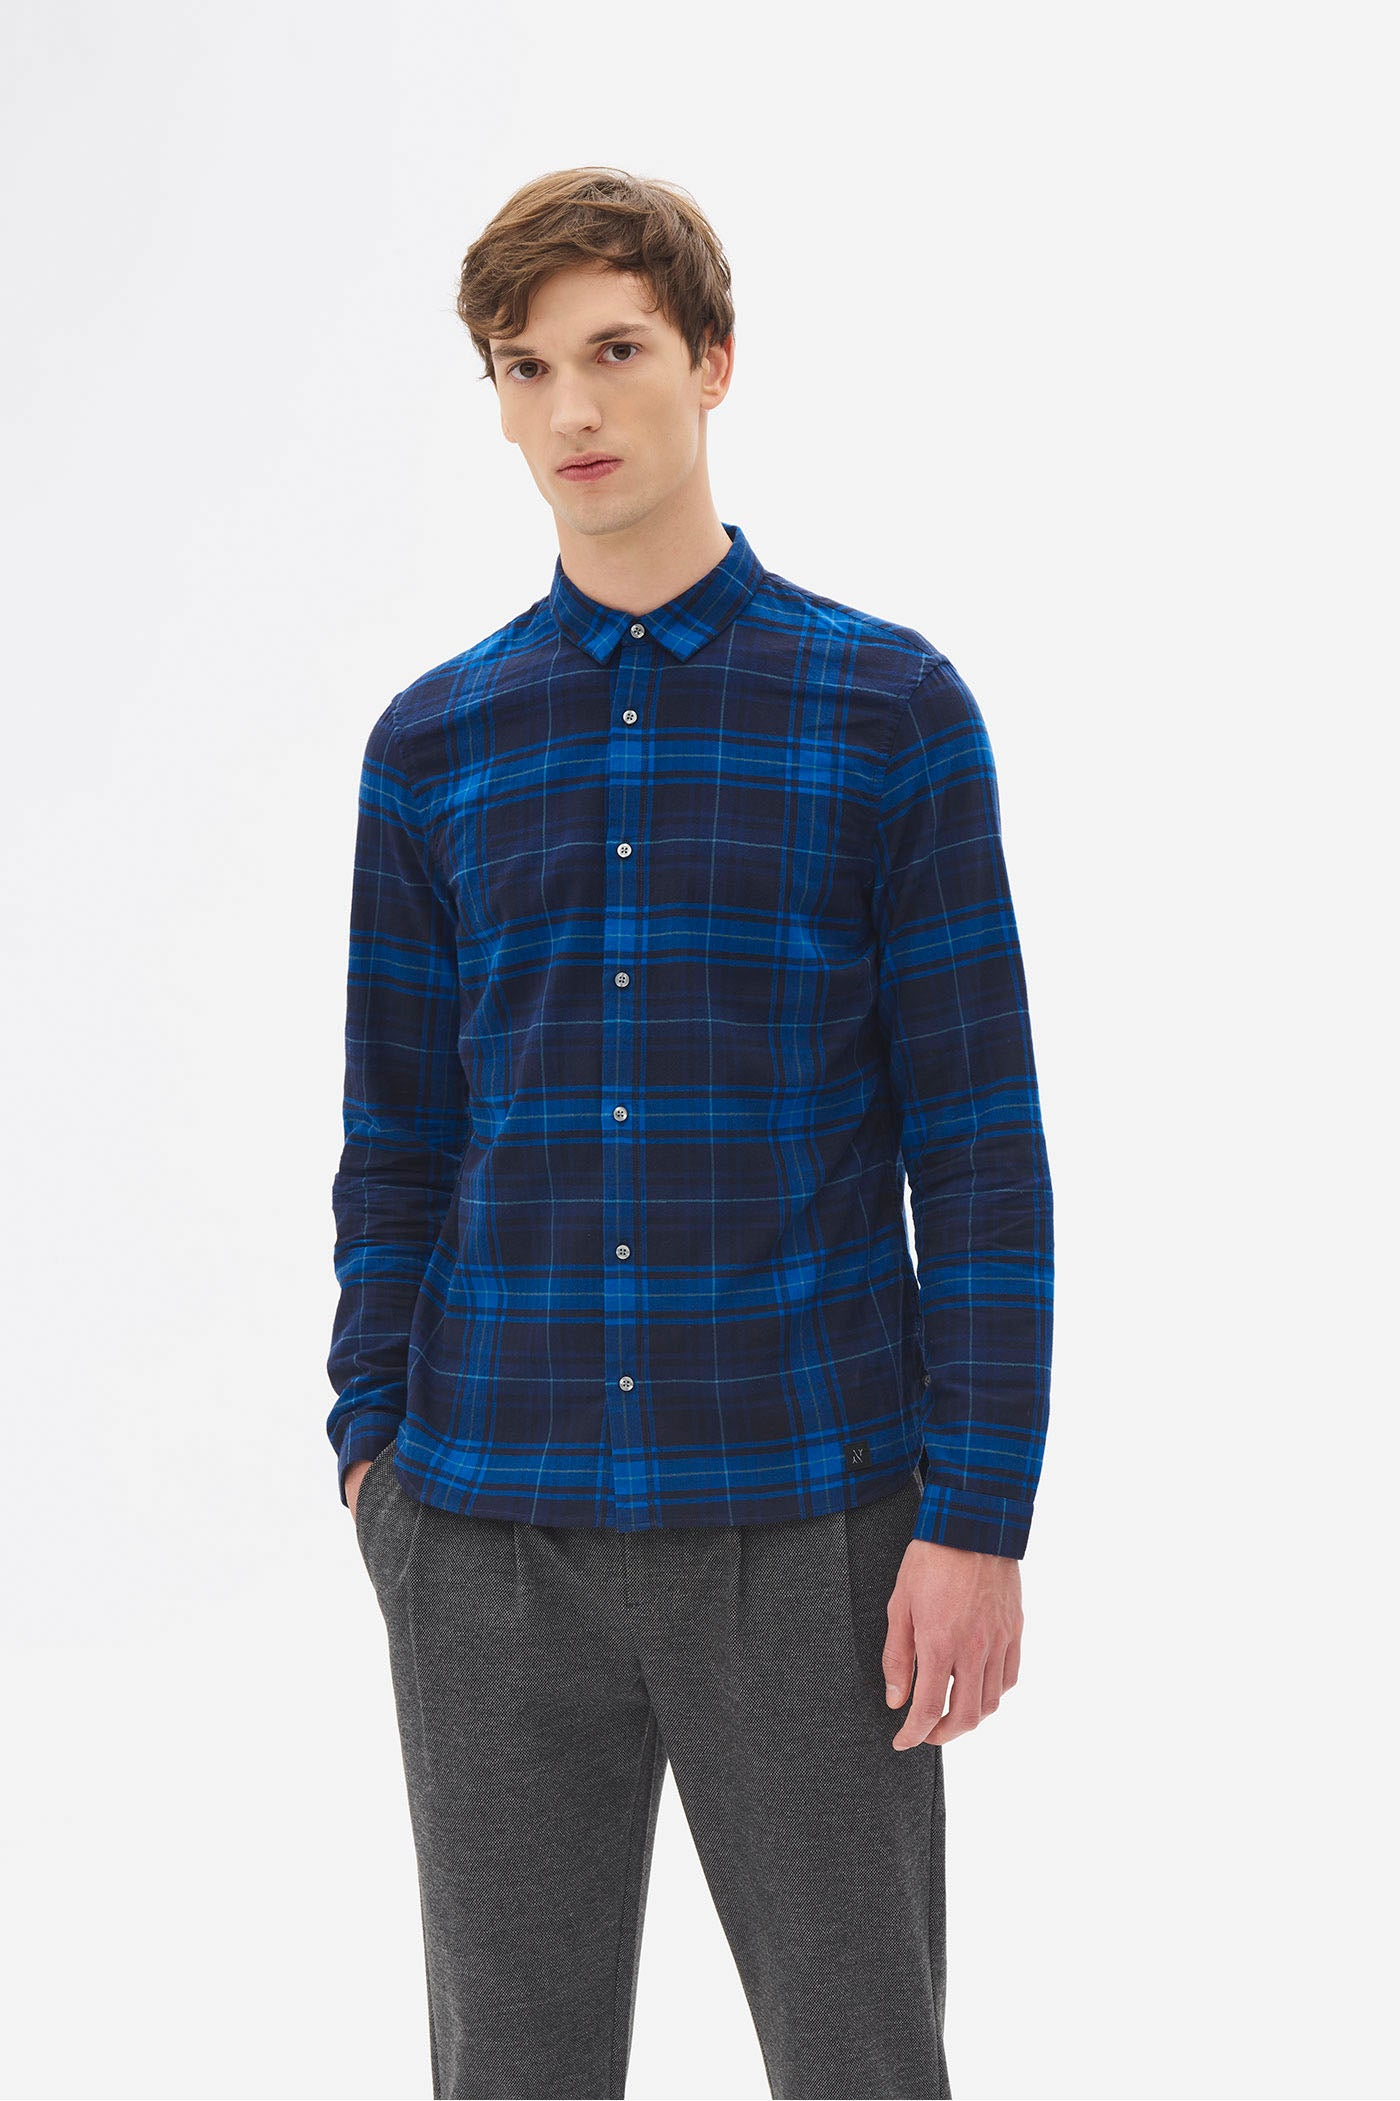 Herringbone Check Shirt night sky